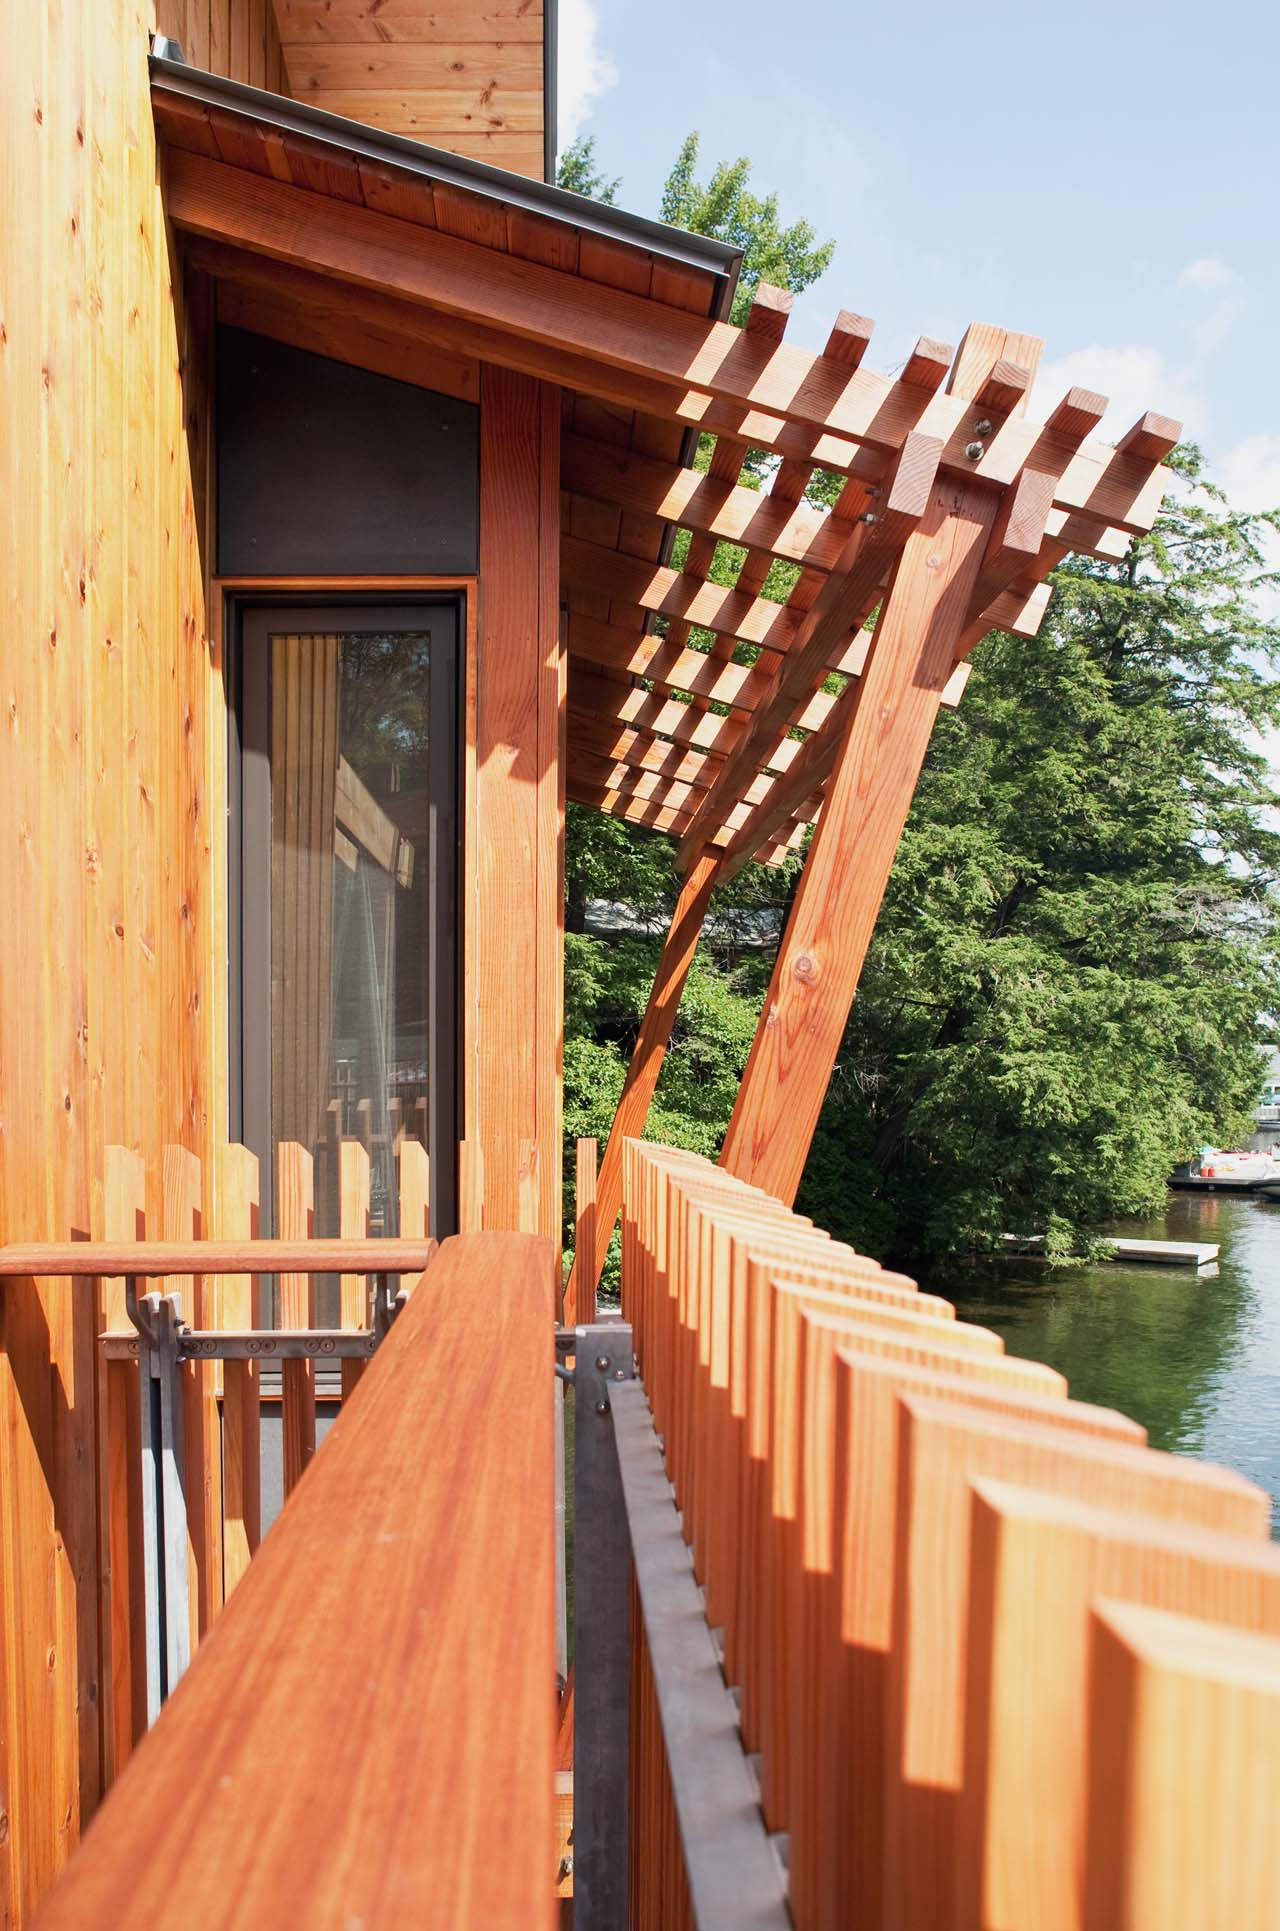 Wood Fence, Boathouse Renovation and Extension in Muskoka Lakes, Ontario